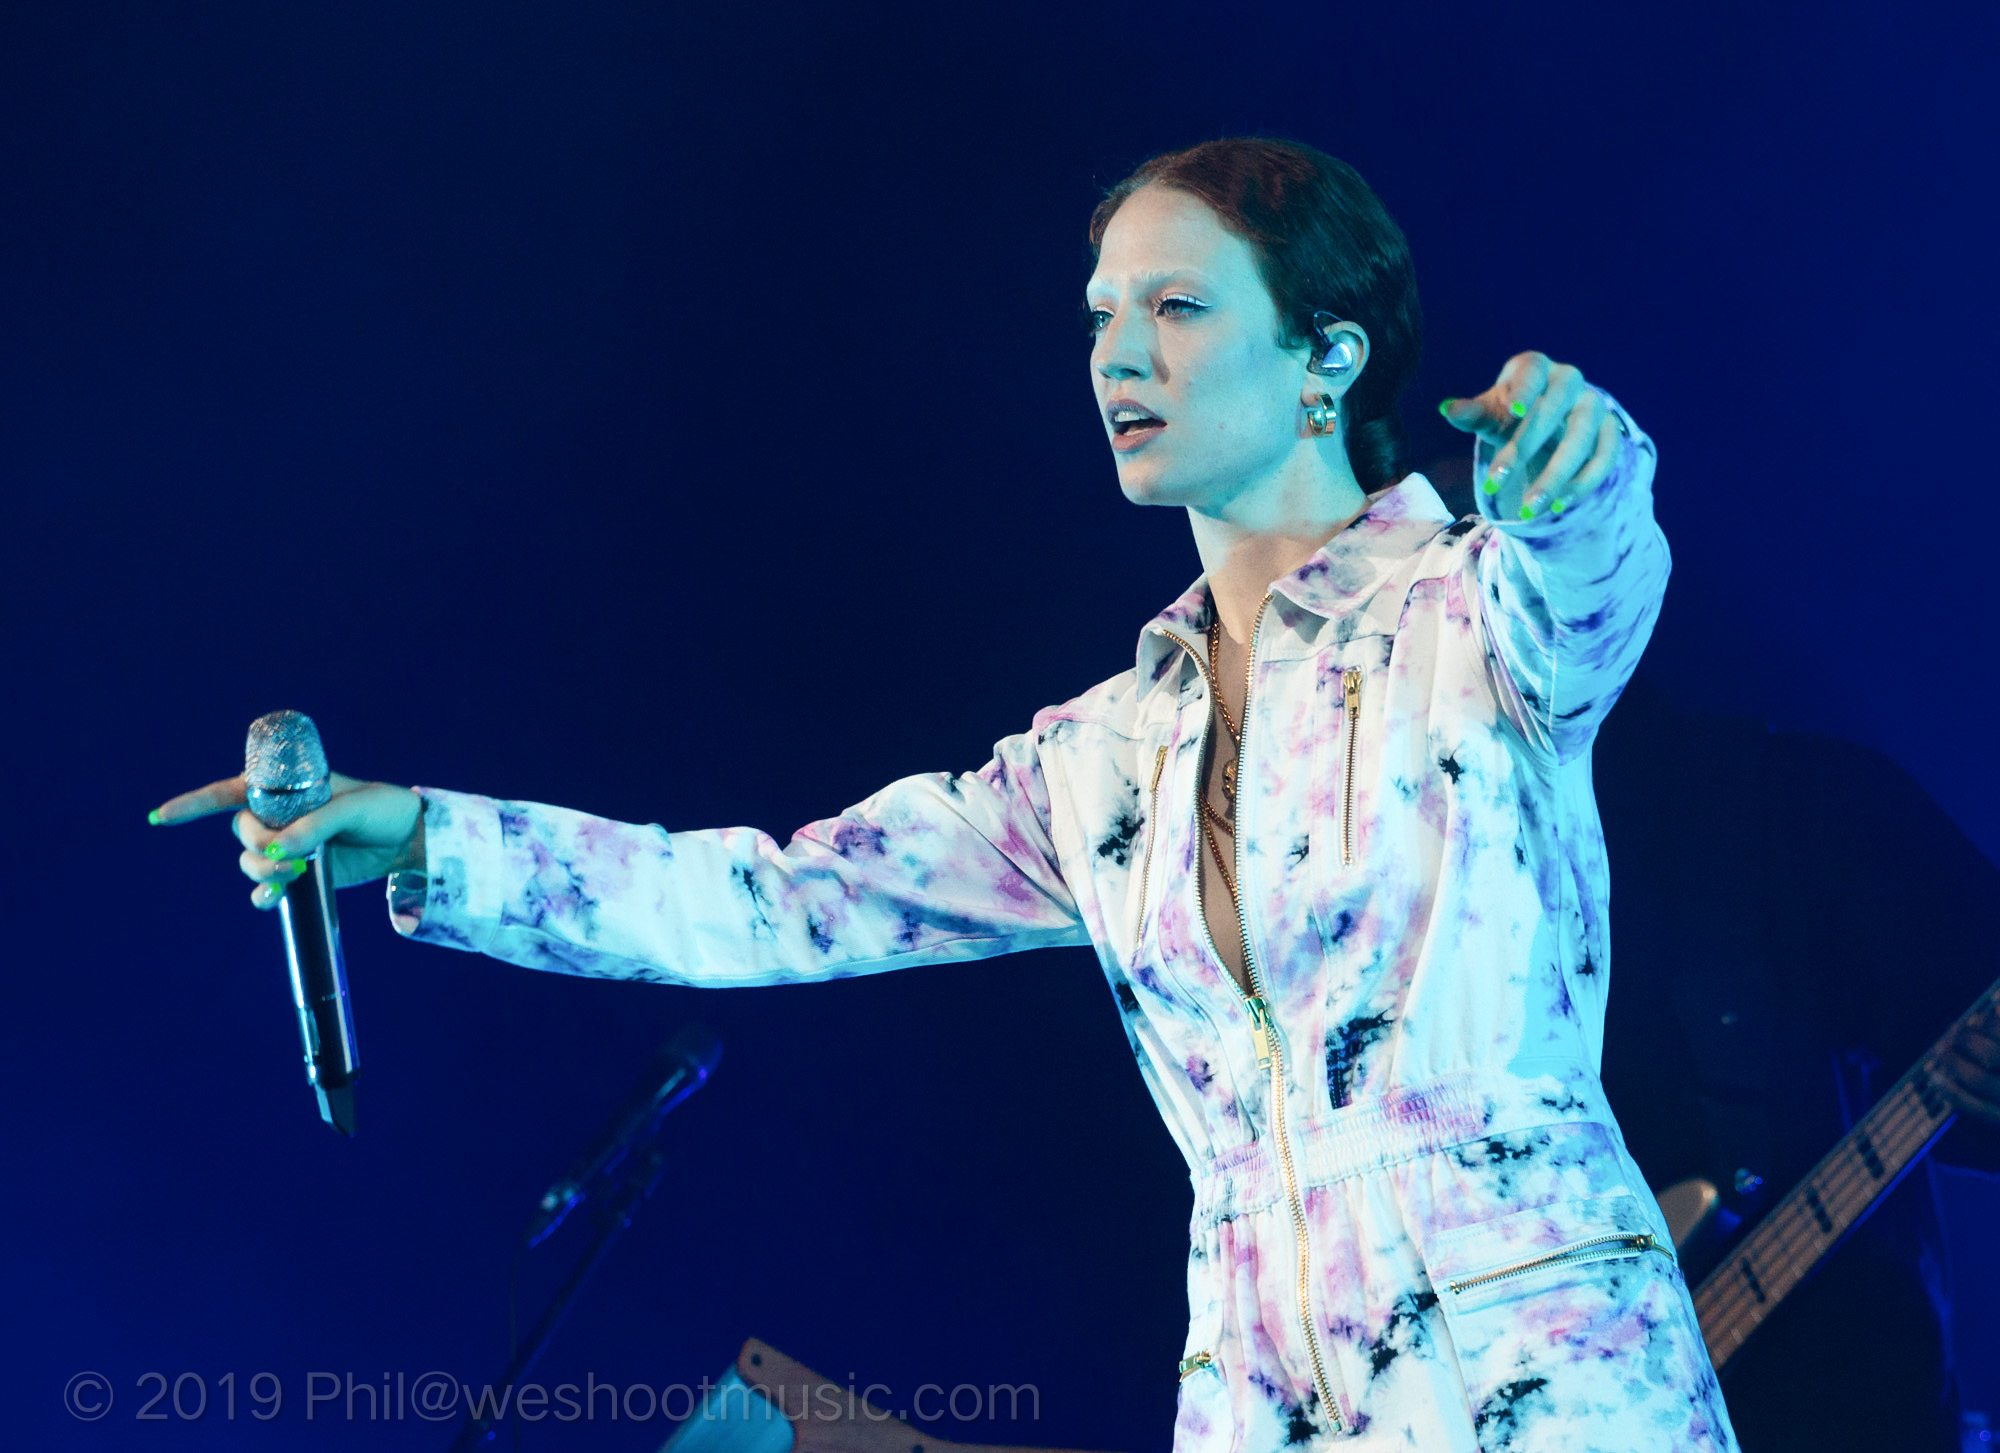 Singin' in the Rain with Jess Glynne at Haydock